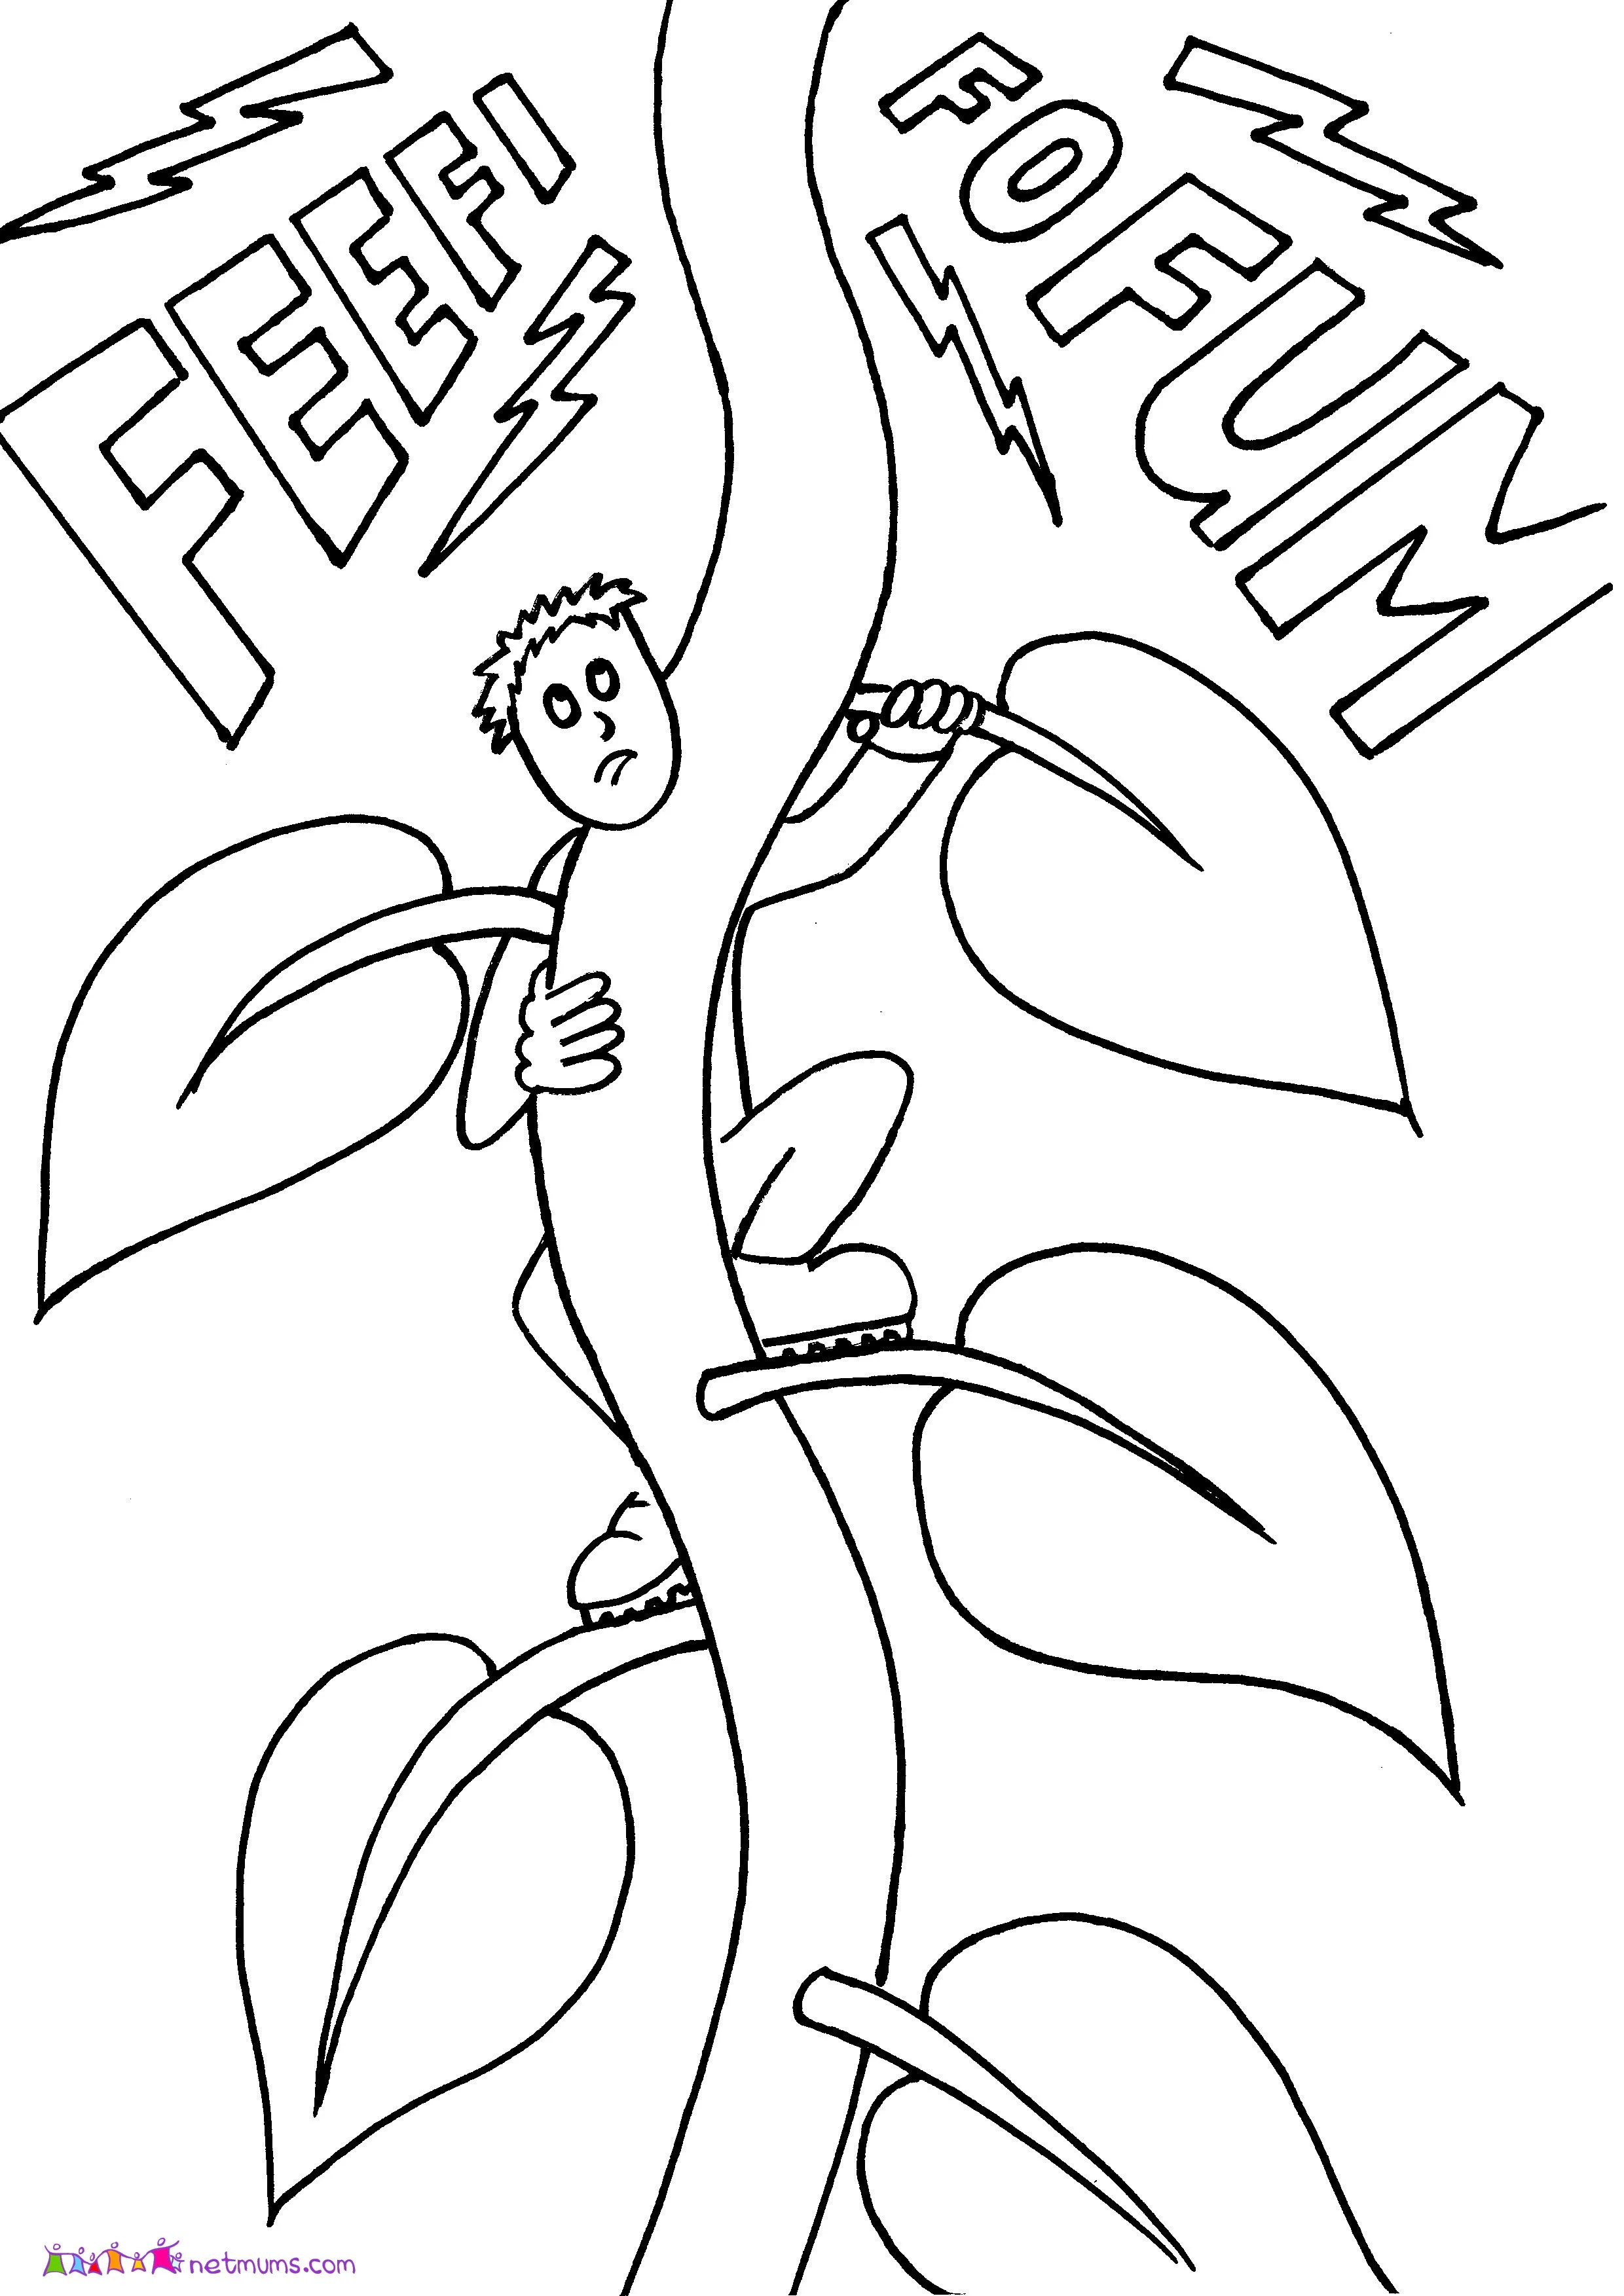 Jack And The Beanstalk Colouring Sheets Sketch Coloring Page